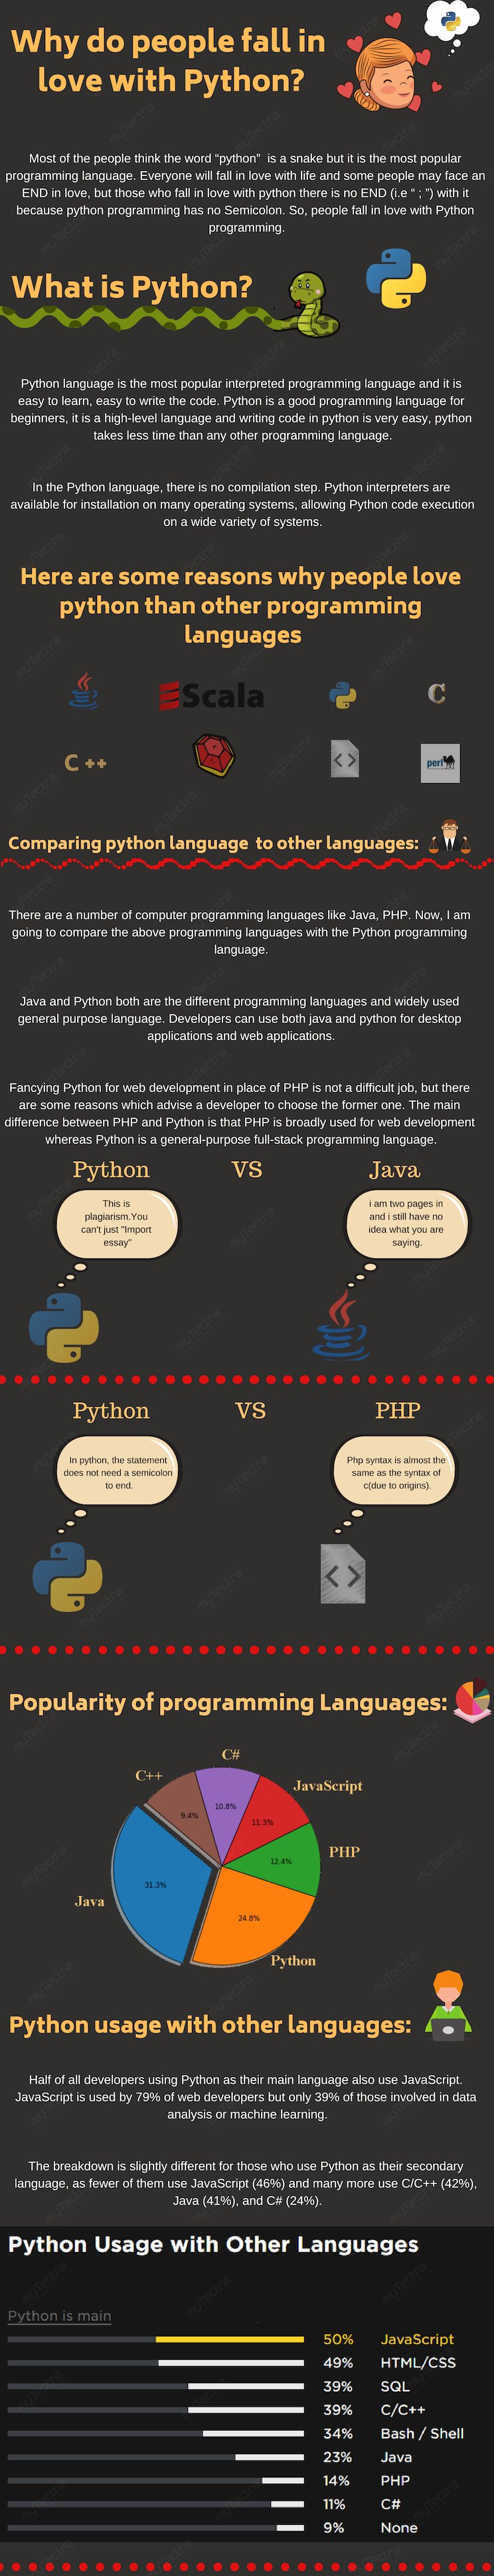 Why-do-people-fall-in-love-with-python